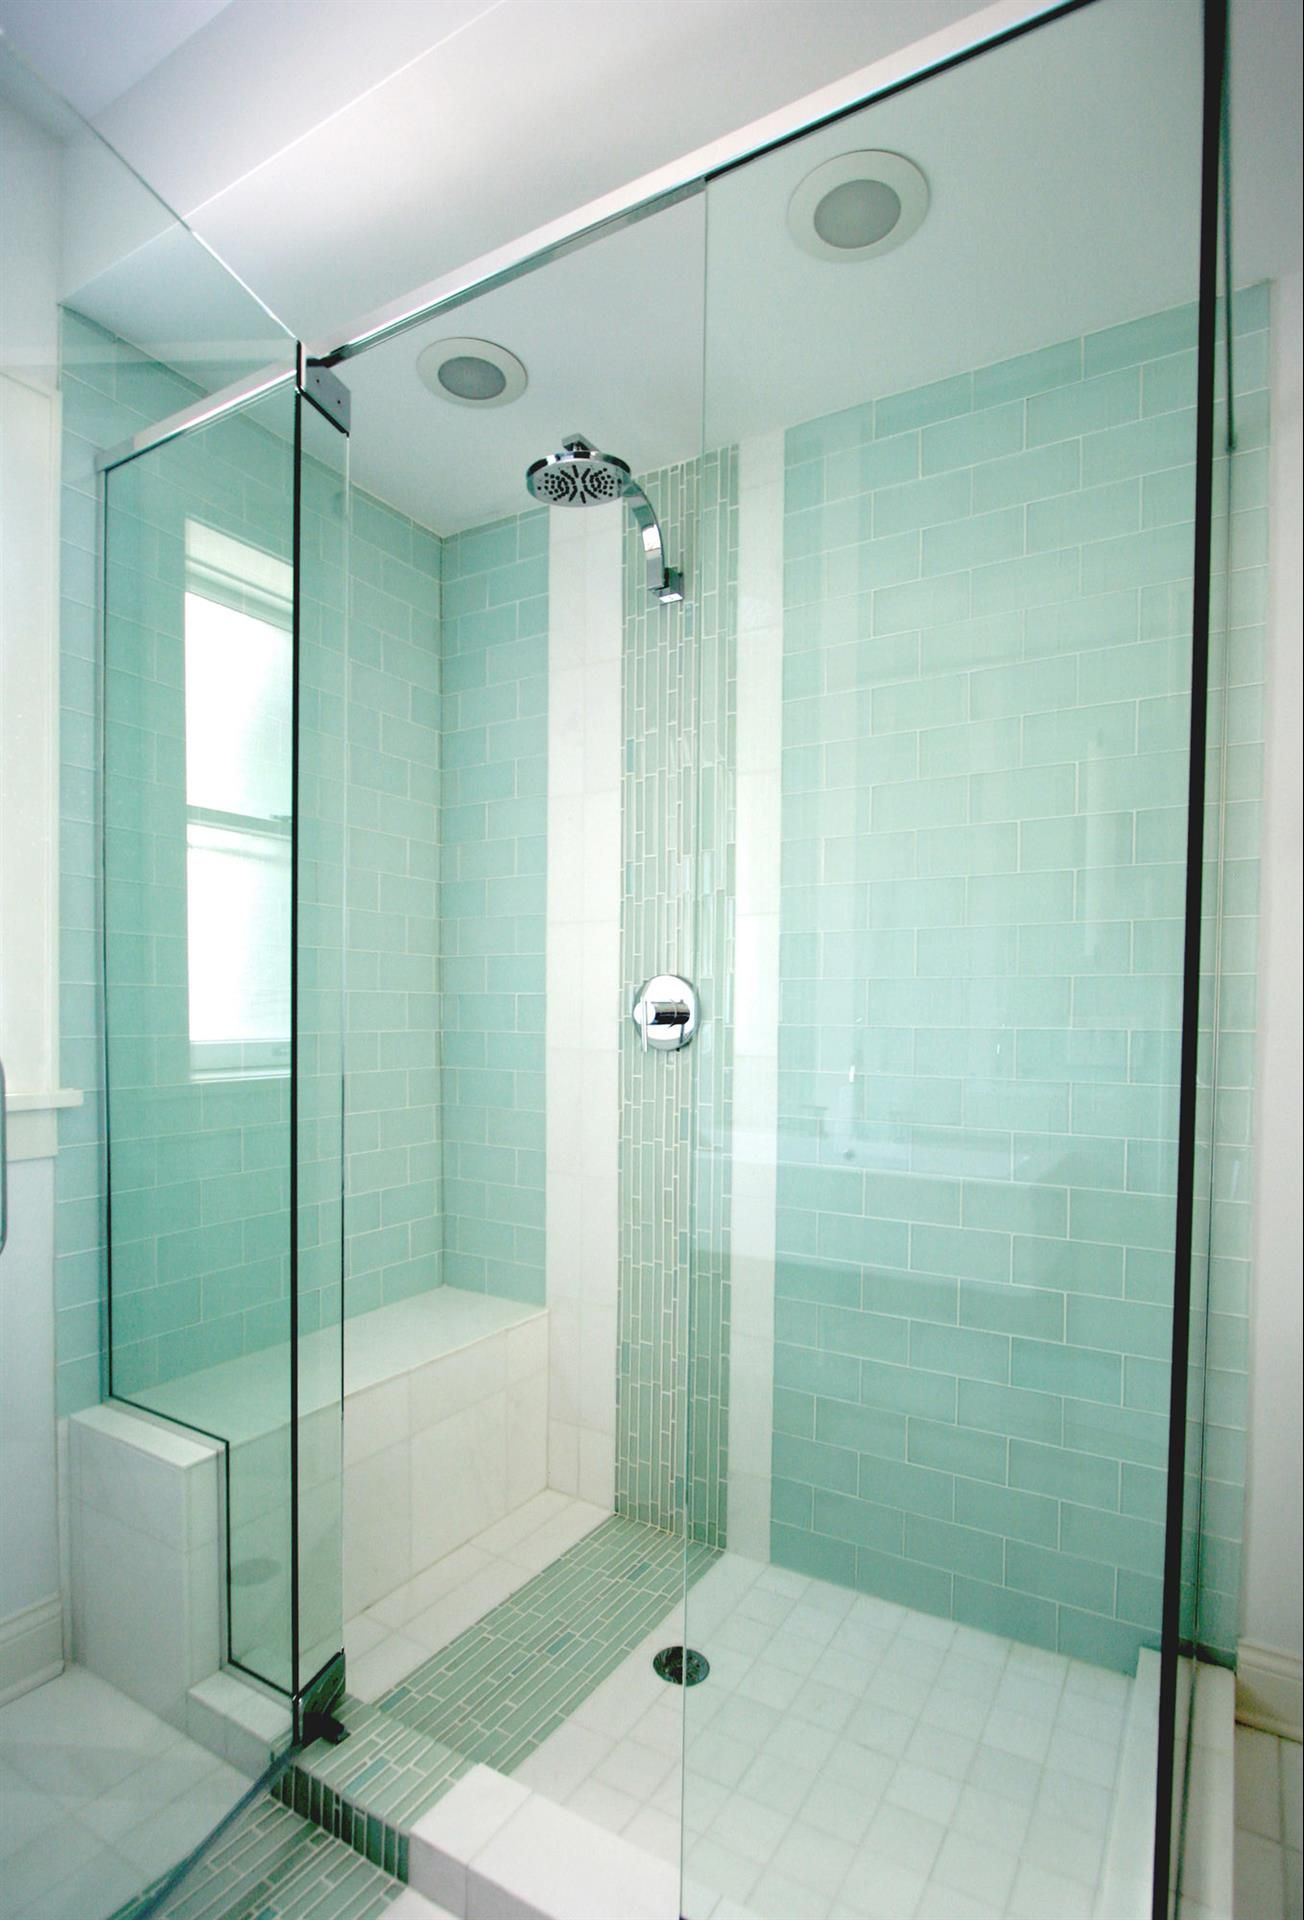 Frosted Sage Green Glass Subway Tile | Bench, Bath and Master bath ...